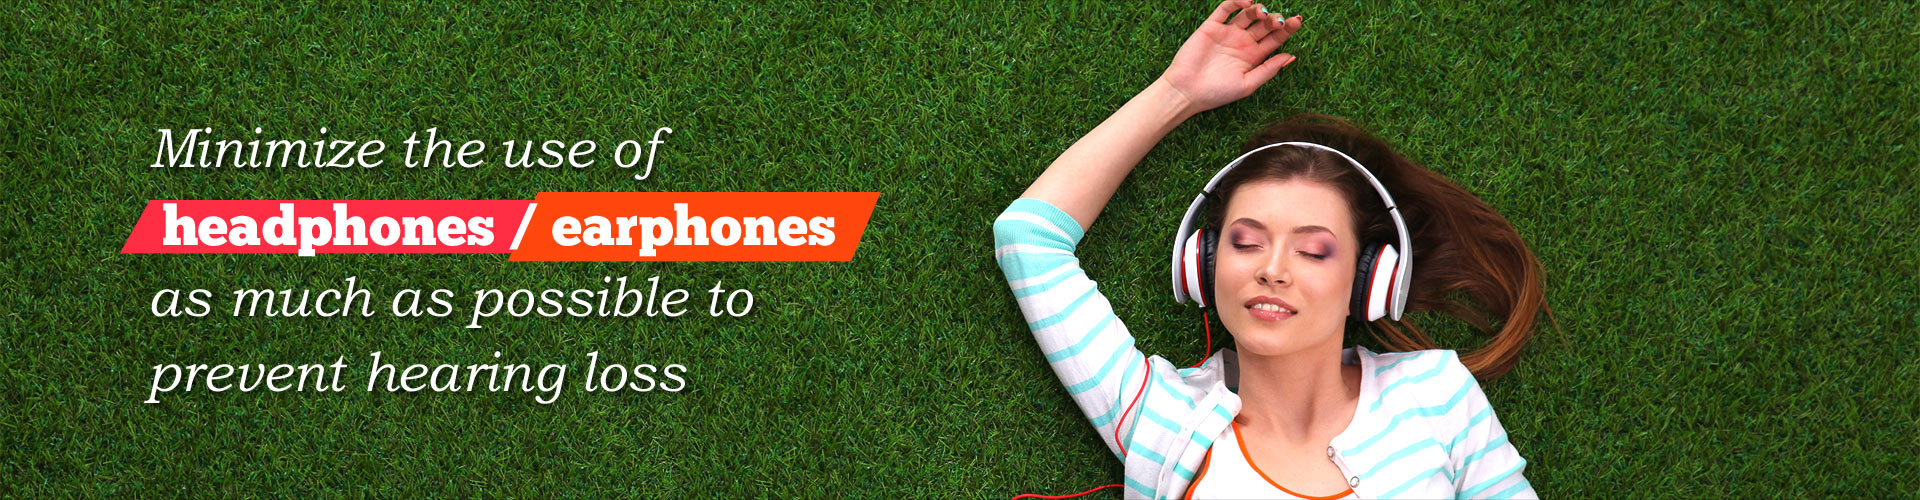 Minimize the use of headphones / earphones as much as possible to prevent hearing loss